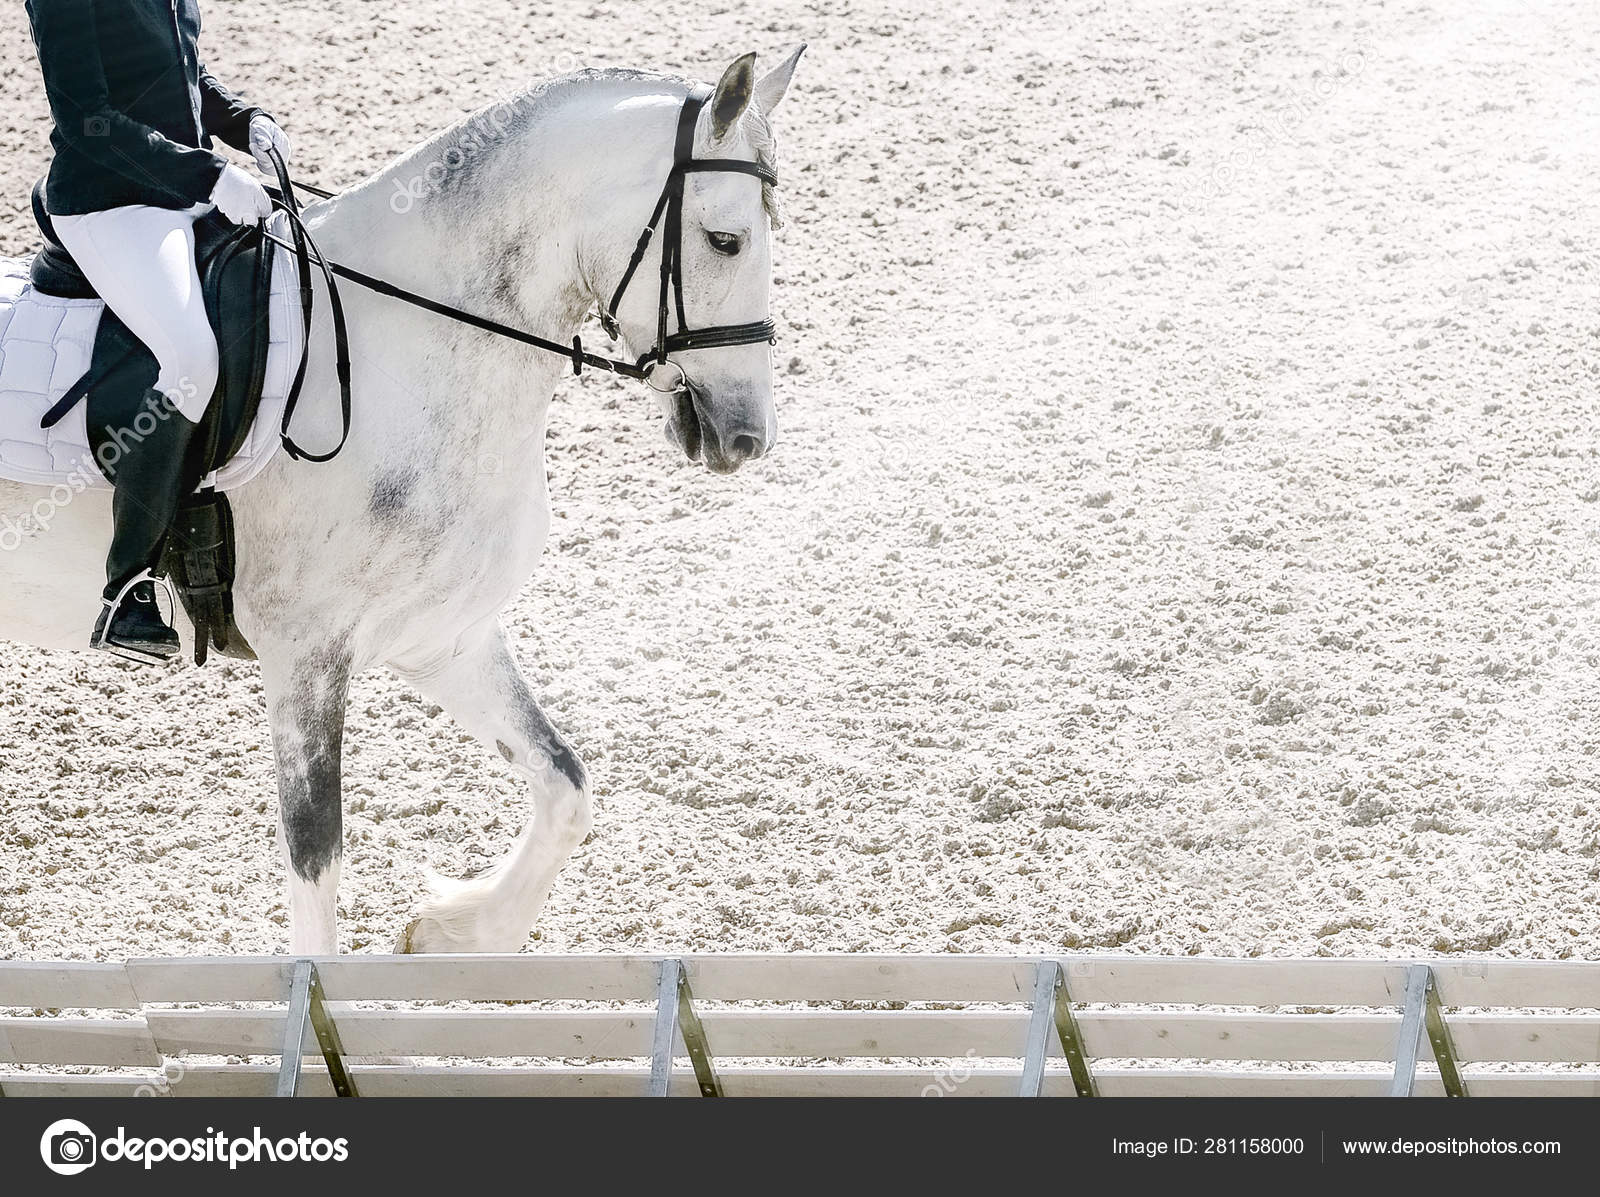 Dressage Horse Rider Black Uniform Beautiful White Horse Portrait Equestrian Stock Photo C Martanovak 281158000